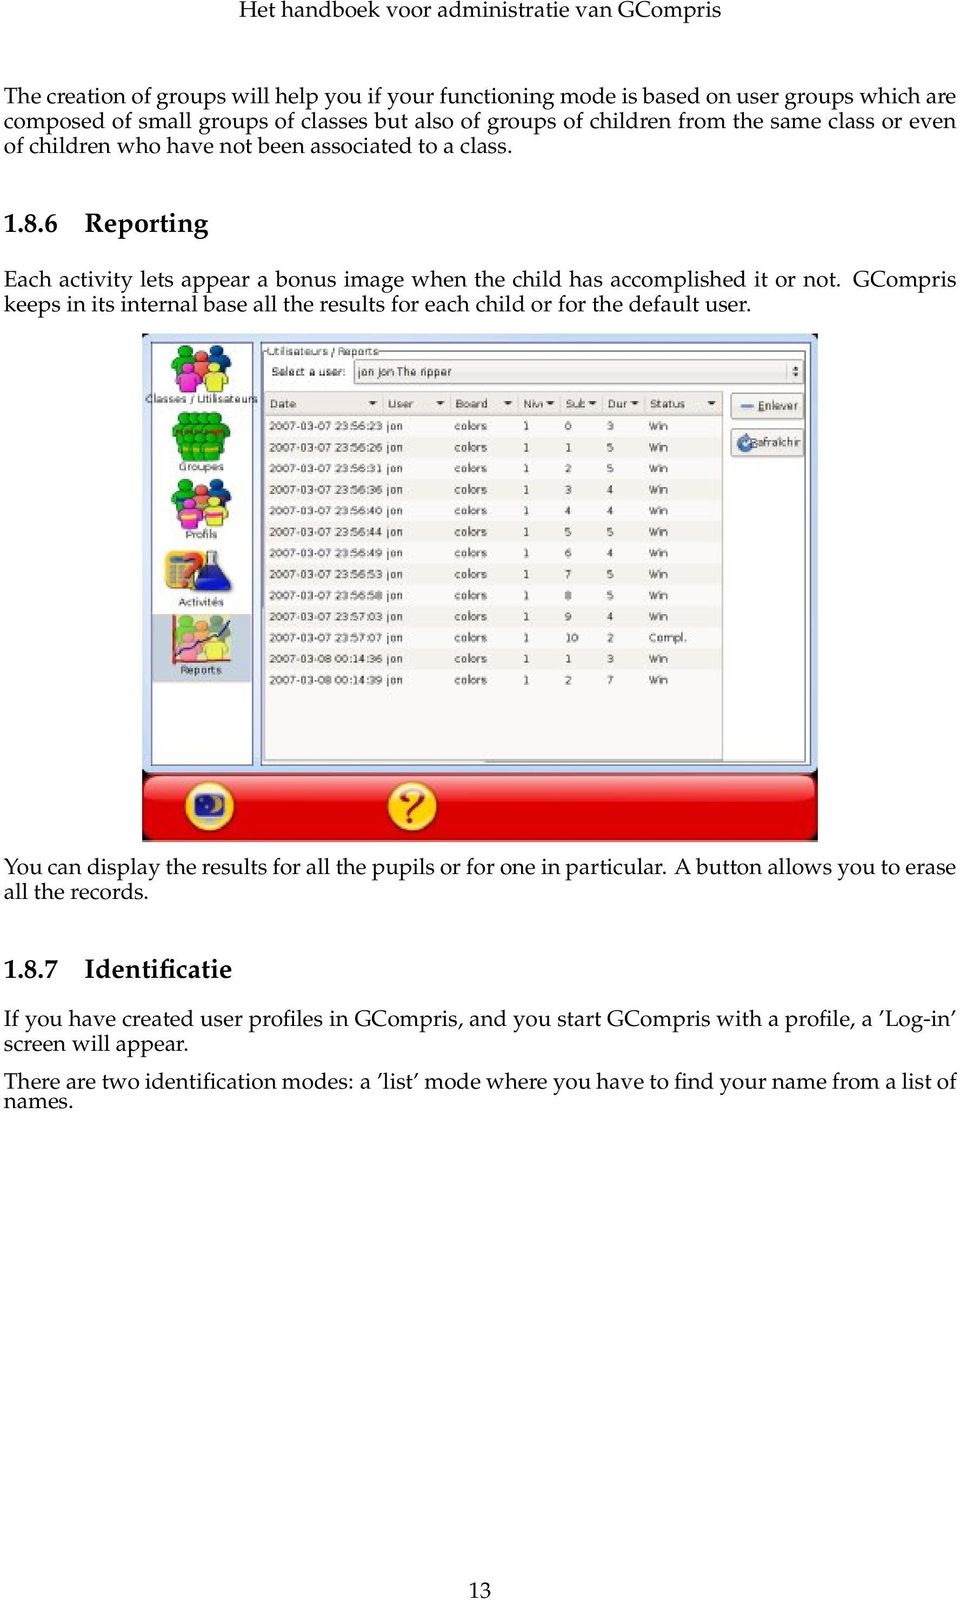 GCompris keeps in its internal base all the results for each child or for the default user. You can display the results for all the pupils or for one in particular.